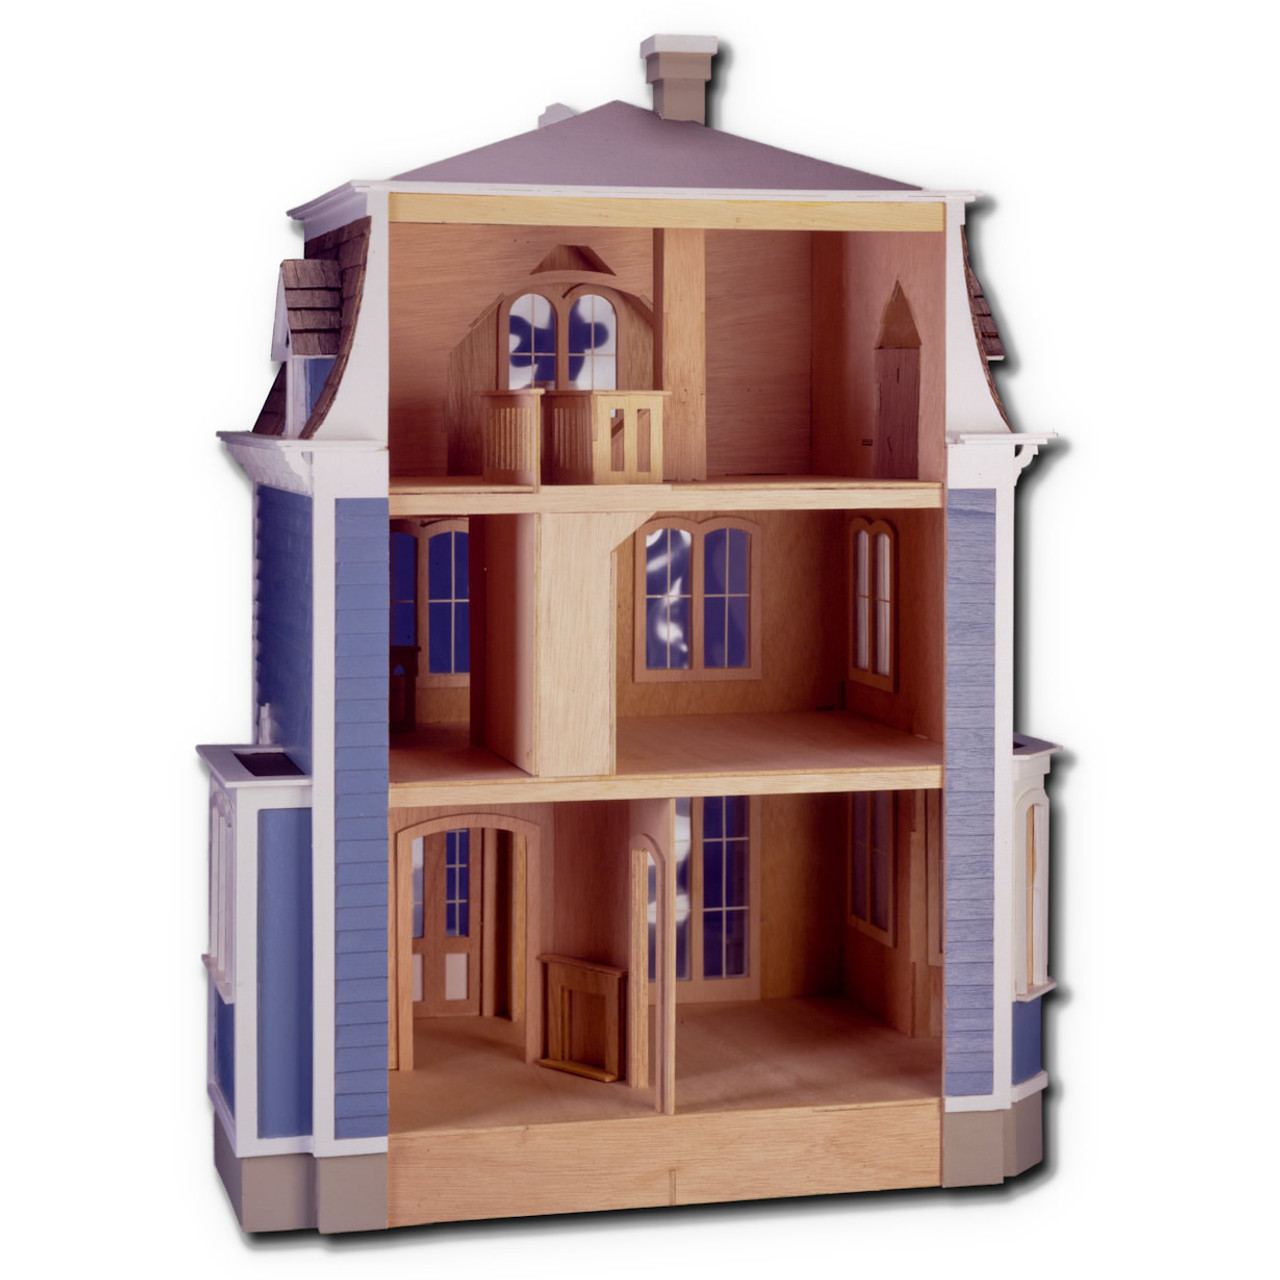 Admirable Willowcrest Dollhouse Kit Wiring Digital Resources Millslowmaporg